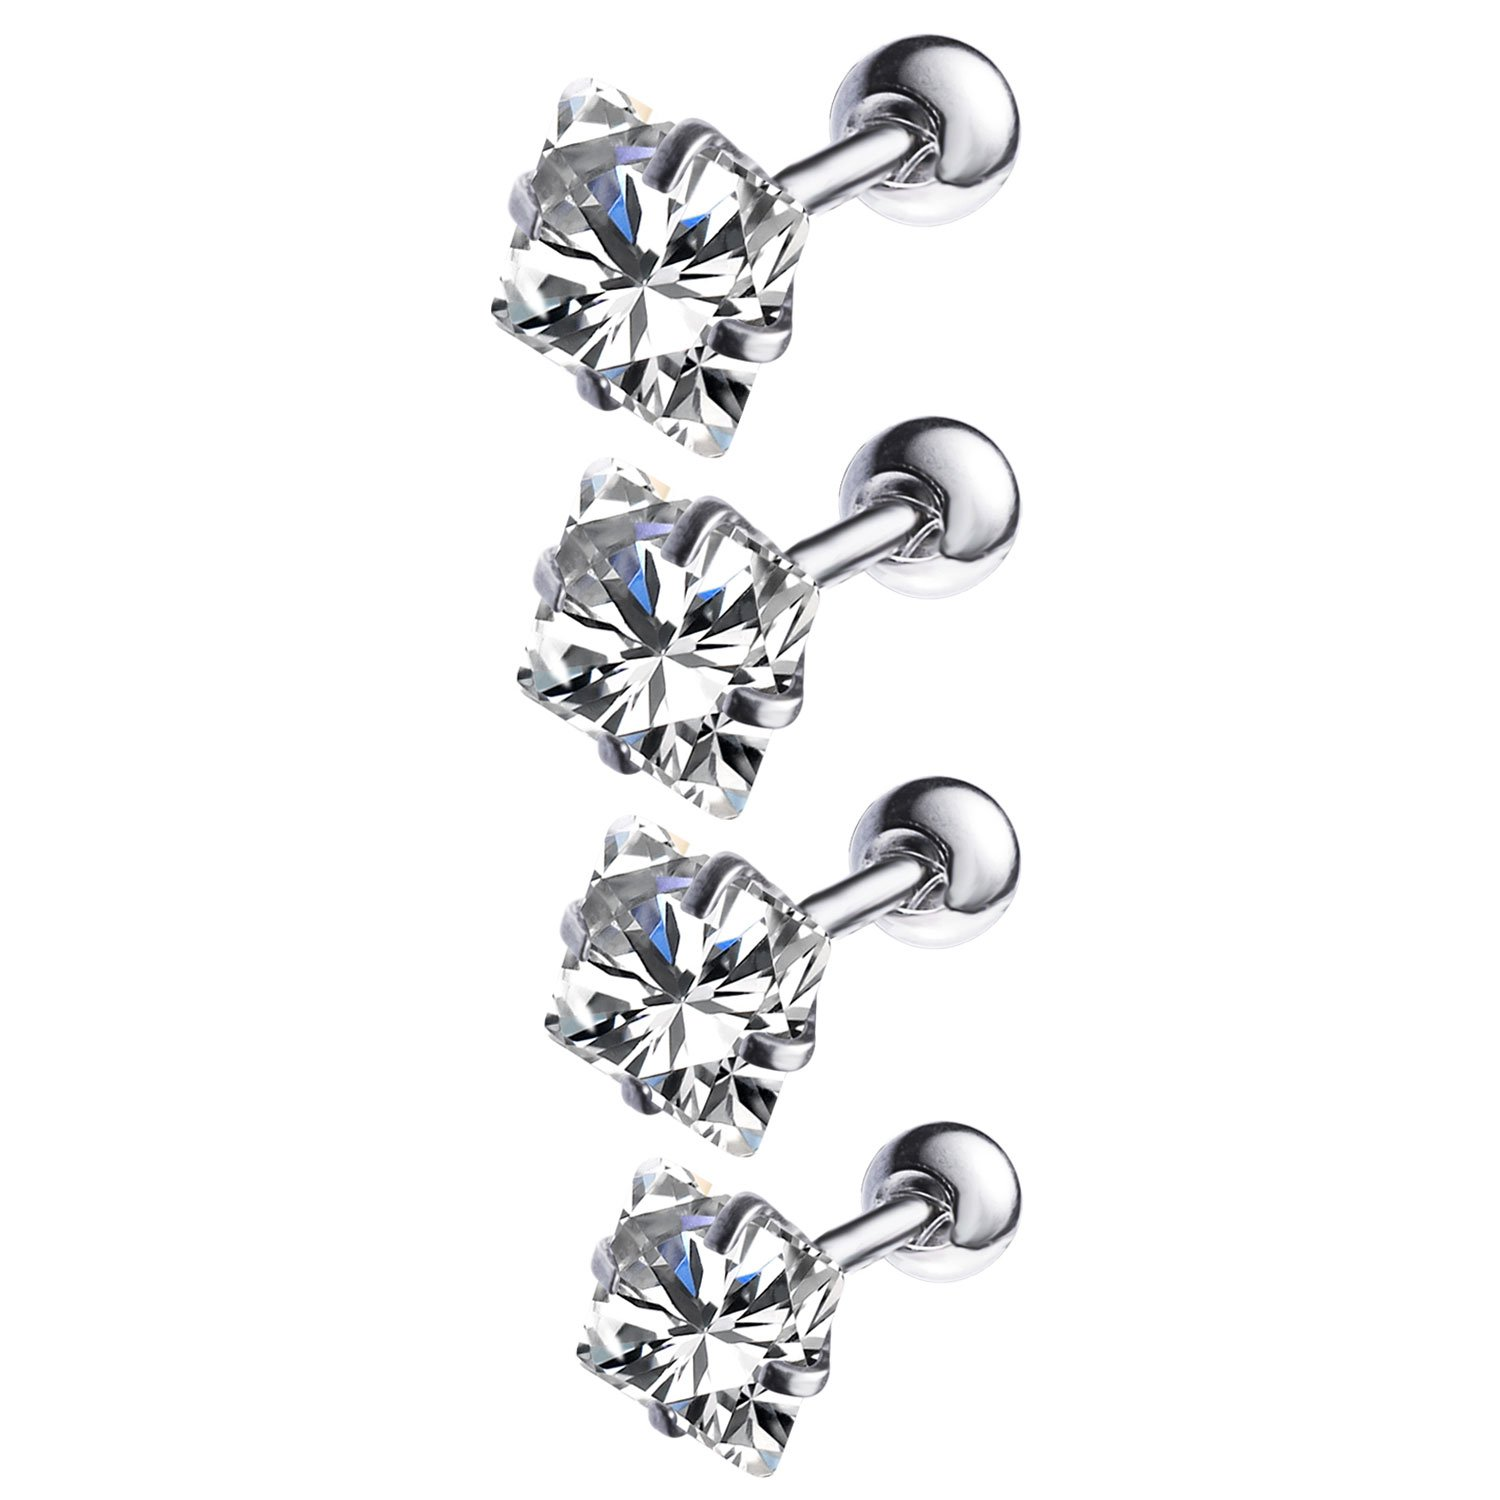 BodyJ4You 4-12PCS Tragus Piercing CZ Crystal Stud Earring Set 16G Surgical Steel Ear Barbell Pack (1.2mm) BR3761